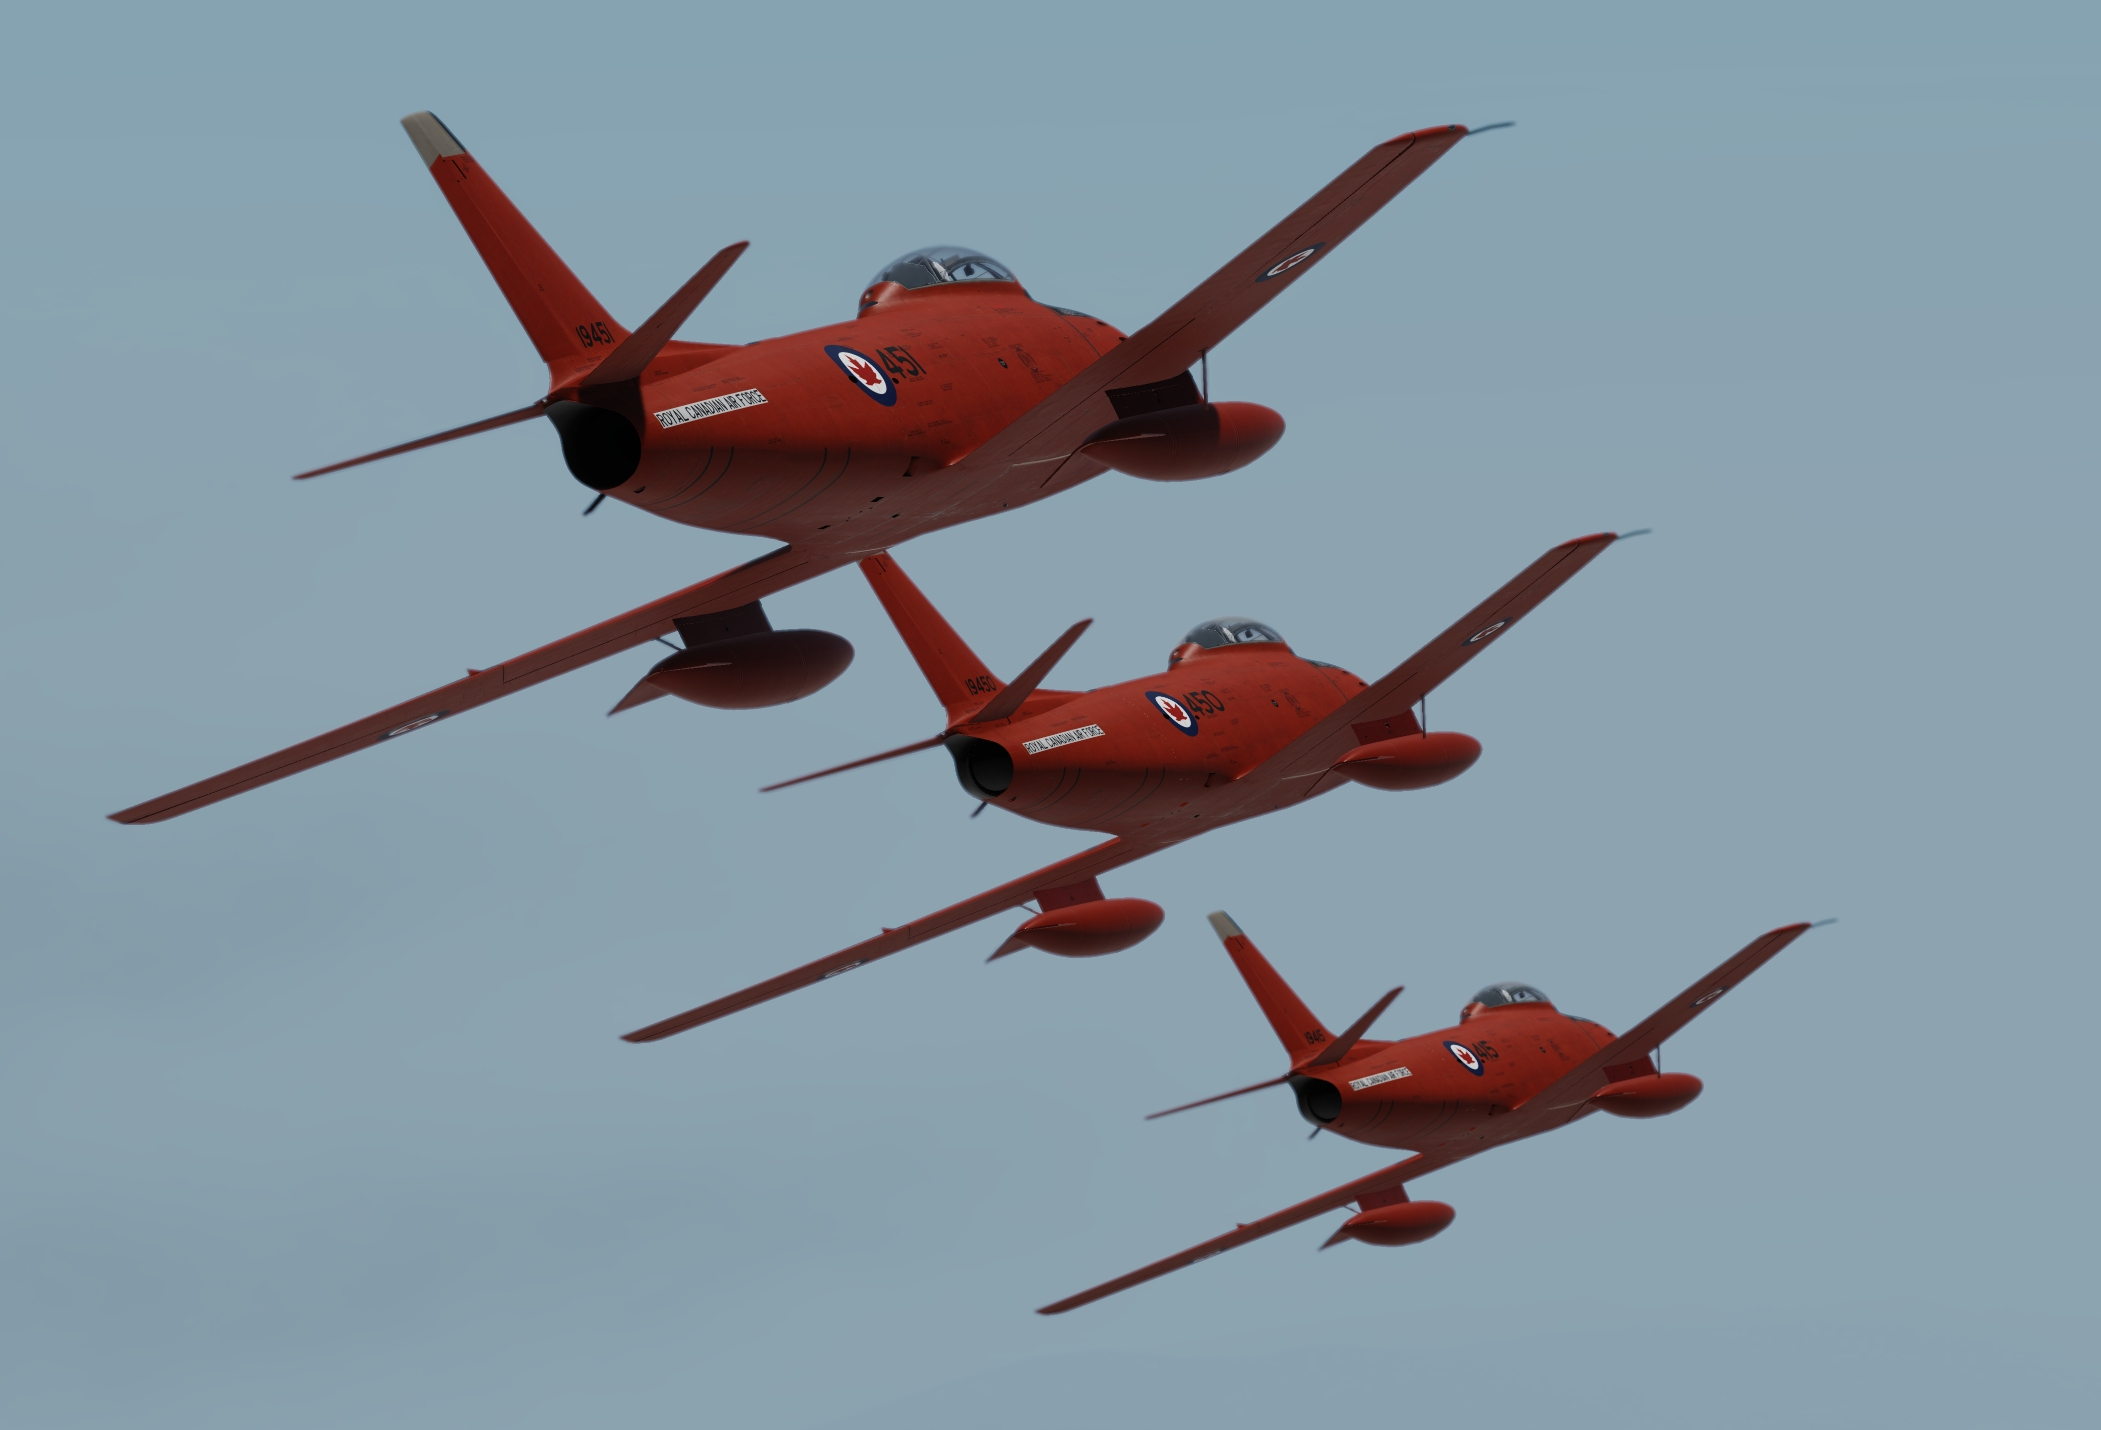 RCAF Fireballs 4-Ship Team for the Sabre Mk.5